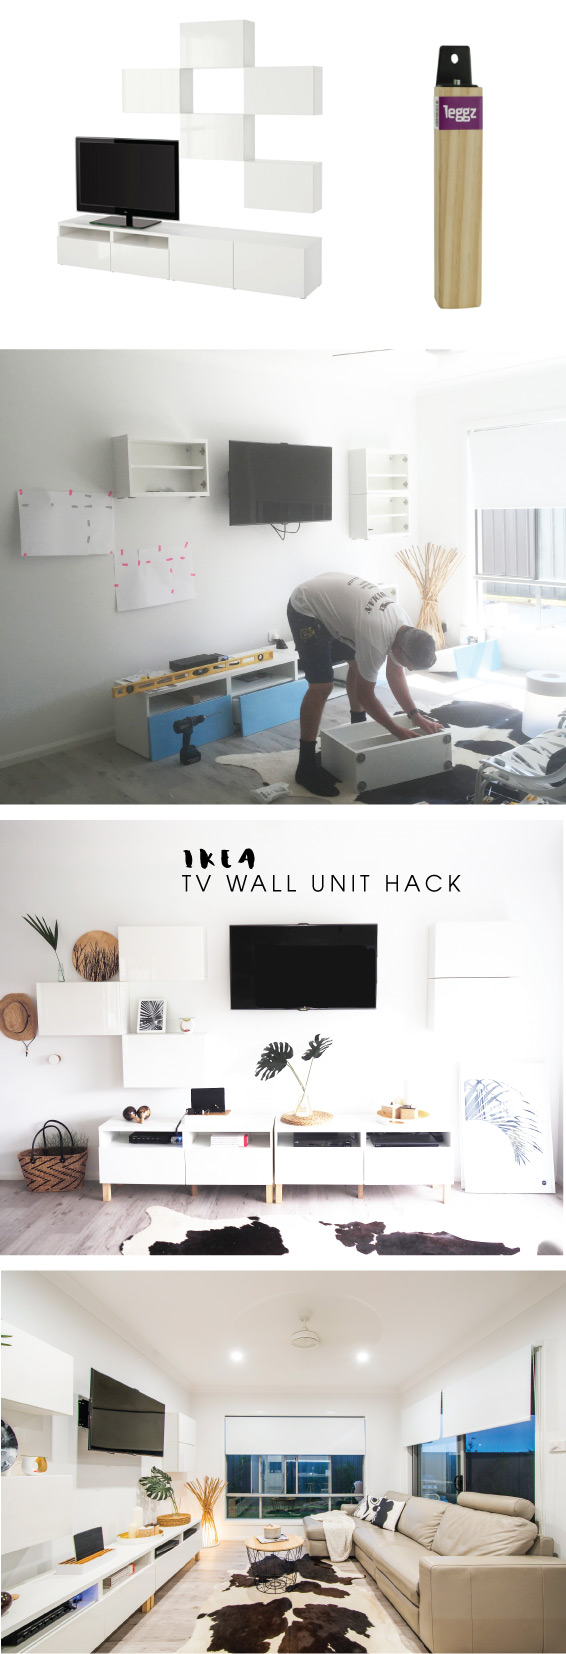 TOMFO Ikea Tv Wall Unit